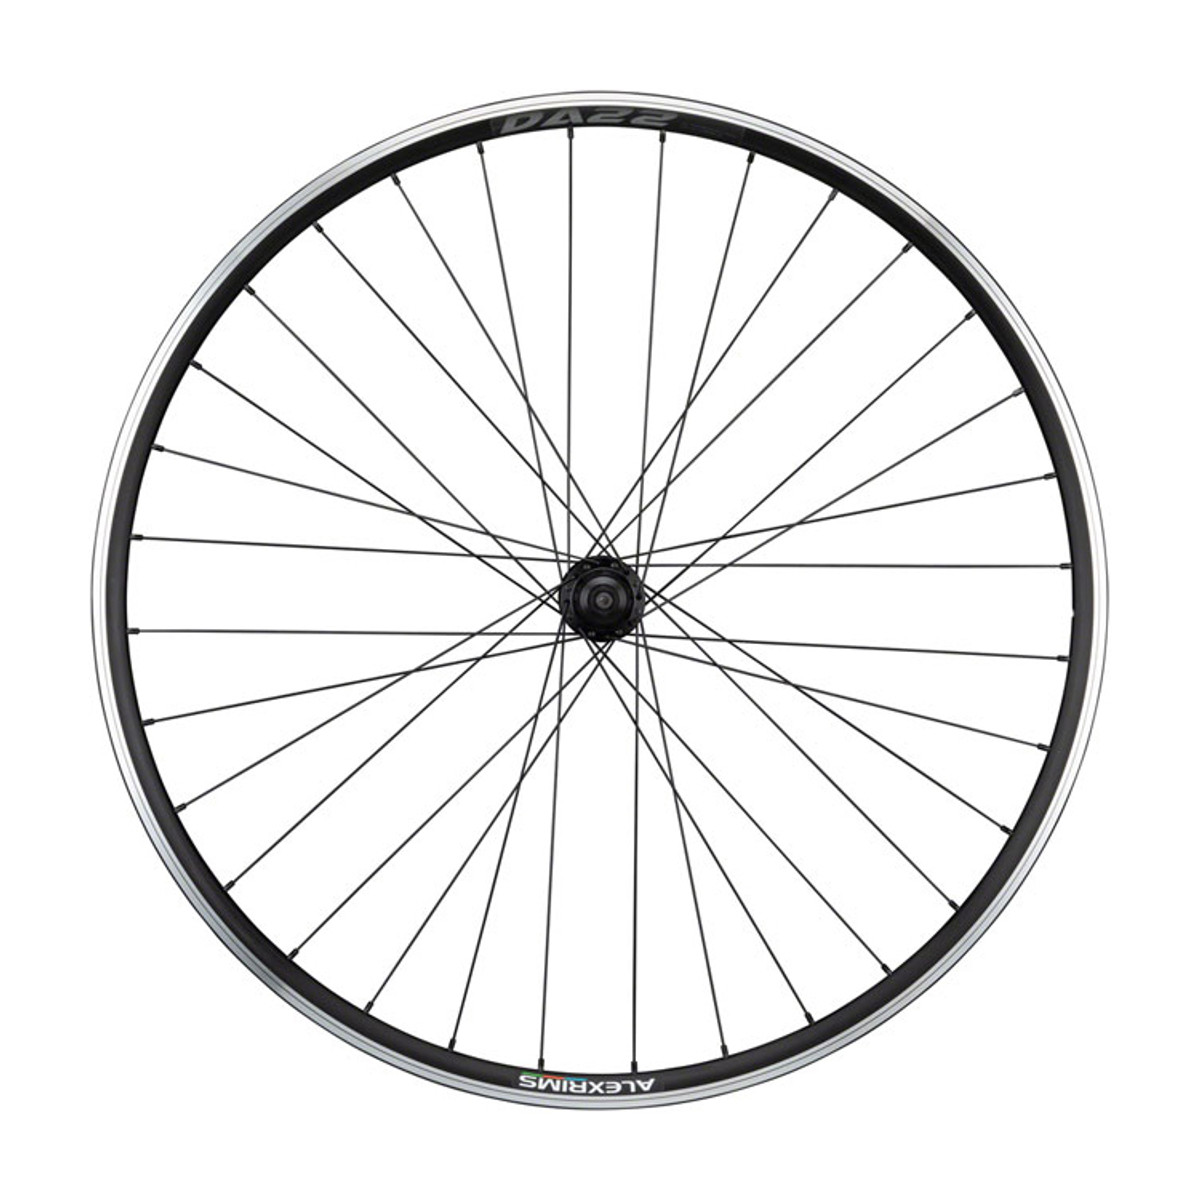 Quality Wheels Tiagra/DA22 Rear Wheel - 700, QR x 130mm, Rim Brake, HG 11, Black, Clincher